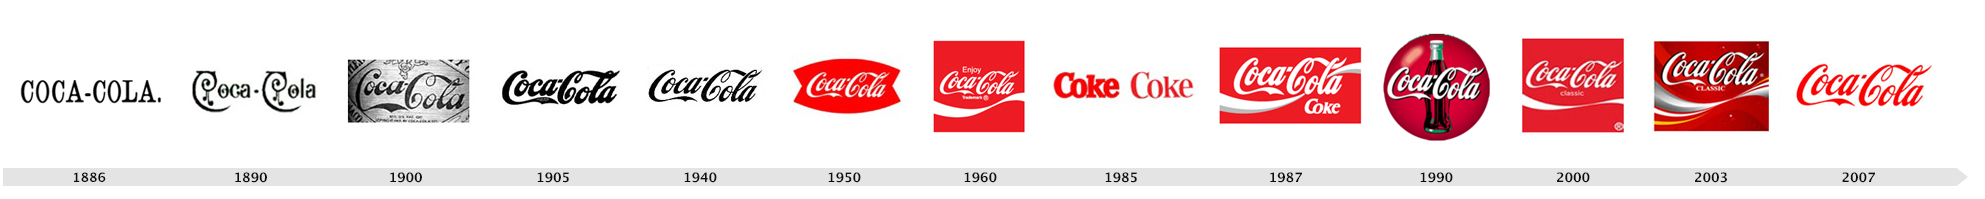 Evolution-Logo-Coca-Cola